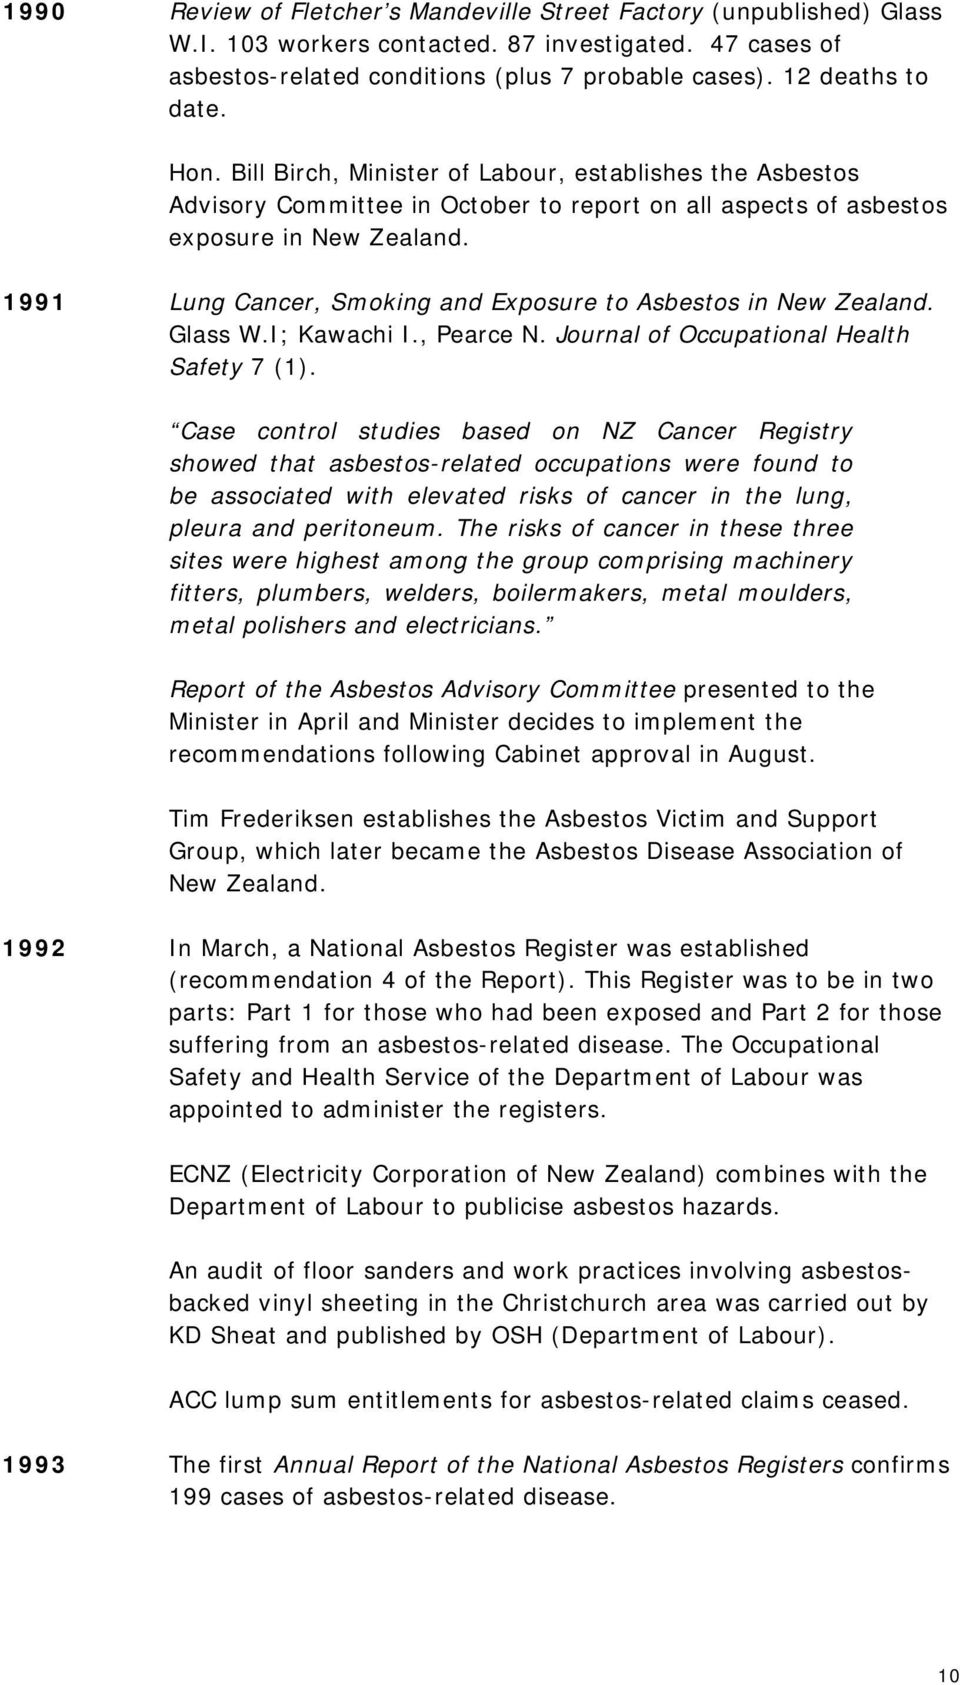 1991 Lung Cancer, Smoking and Exposure to Asbestos in New Zealand. Glass W.I; Kawachi I., Pearce N. Journal of Occupational Health Safety 7 (1).